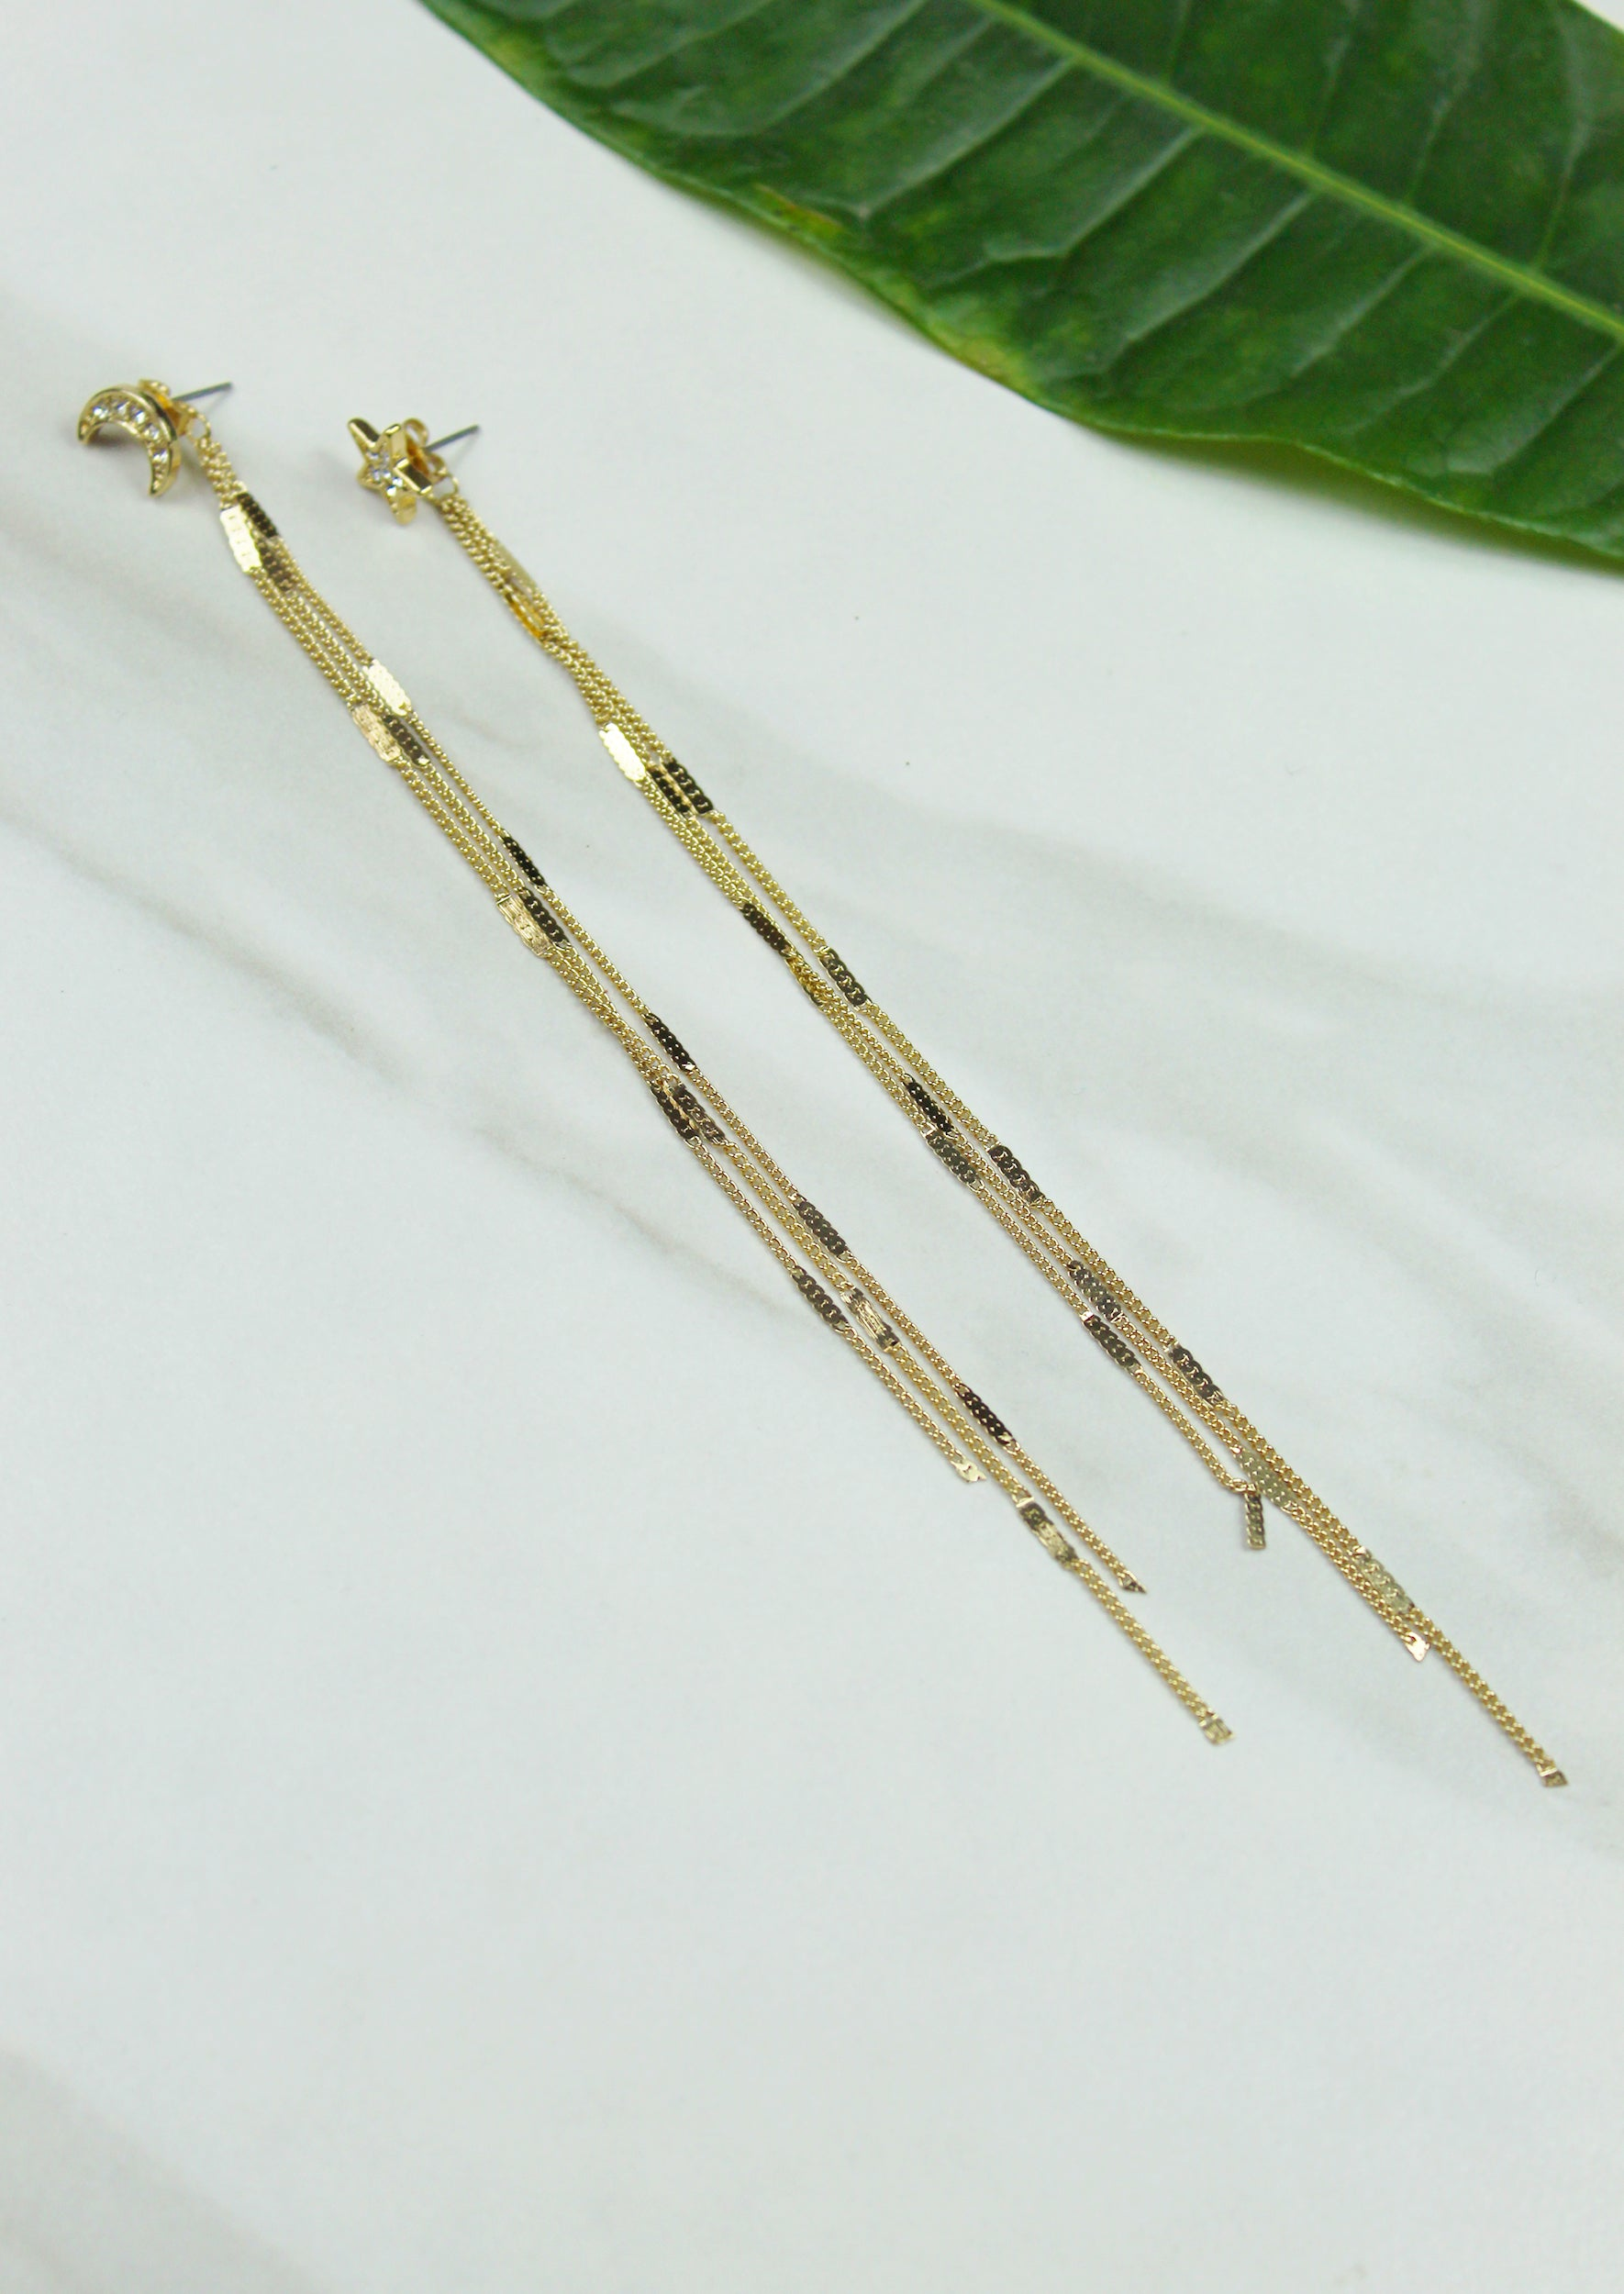 Cosmos Earrings - Jules Smith - 14K Gold Plated - Boho Jewelry